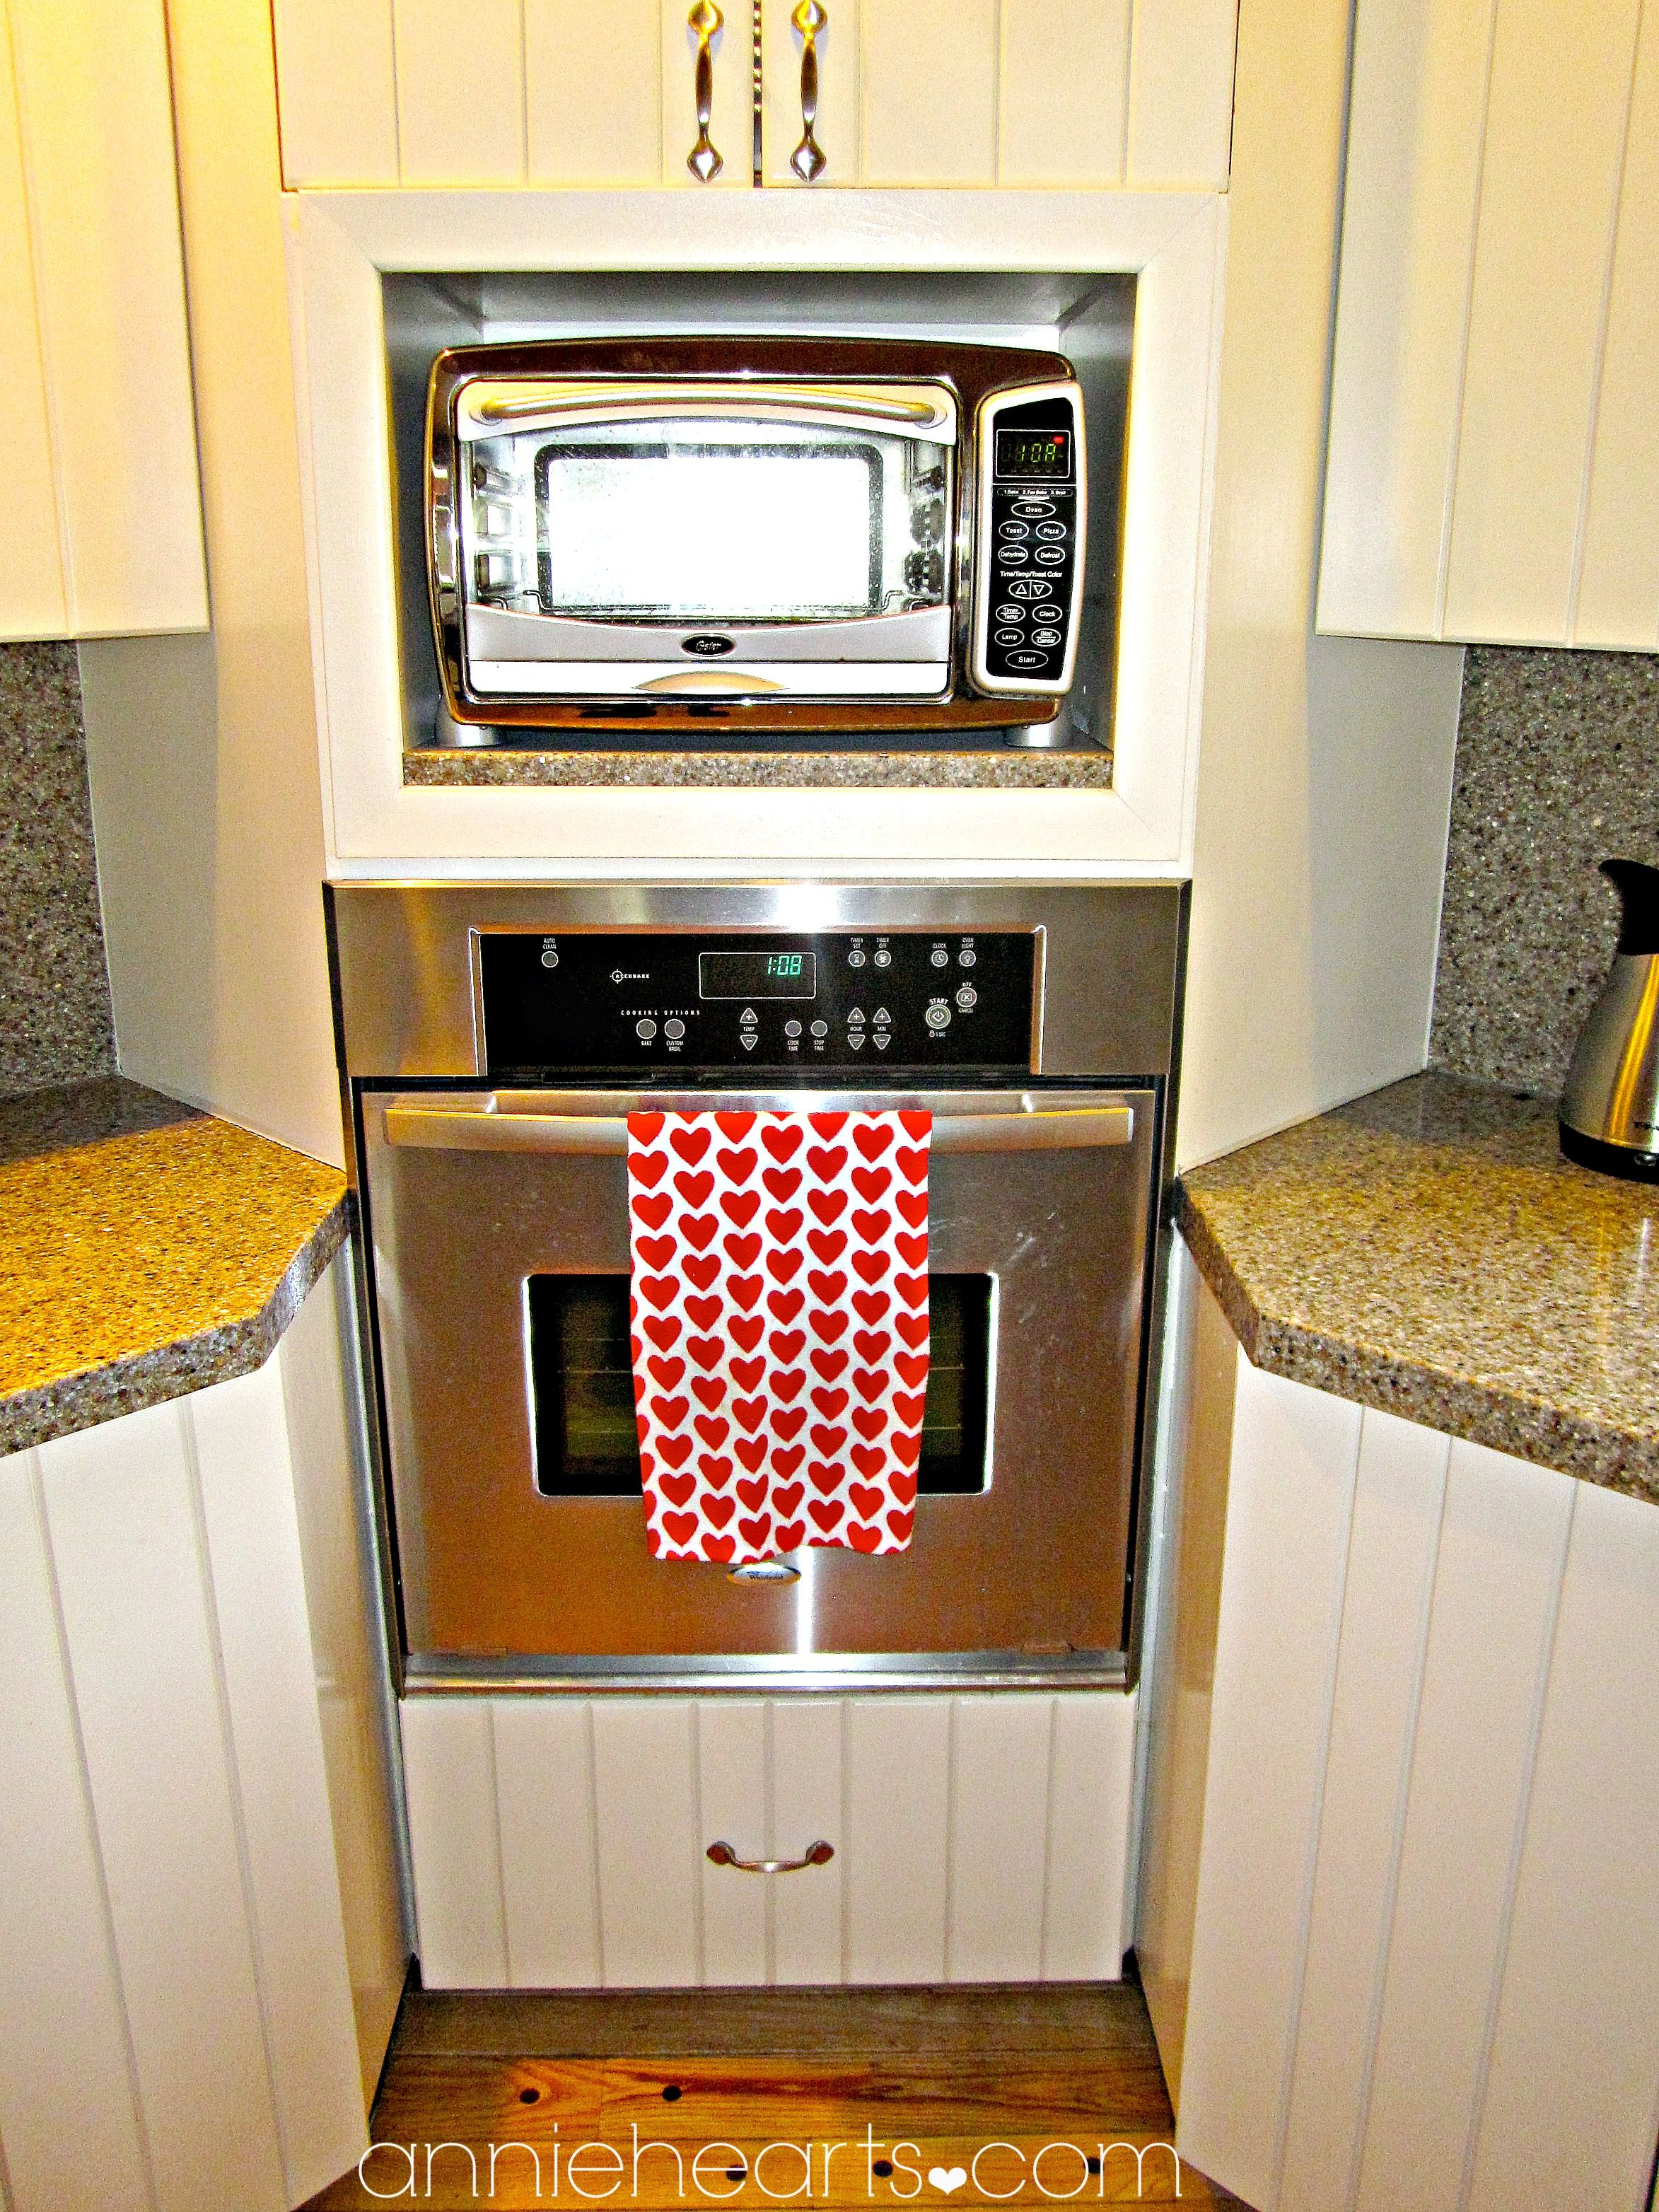 Use Leftover Granite Countertop To Put Under Microwave